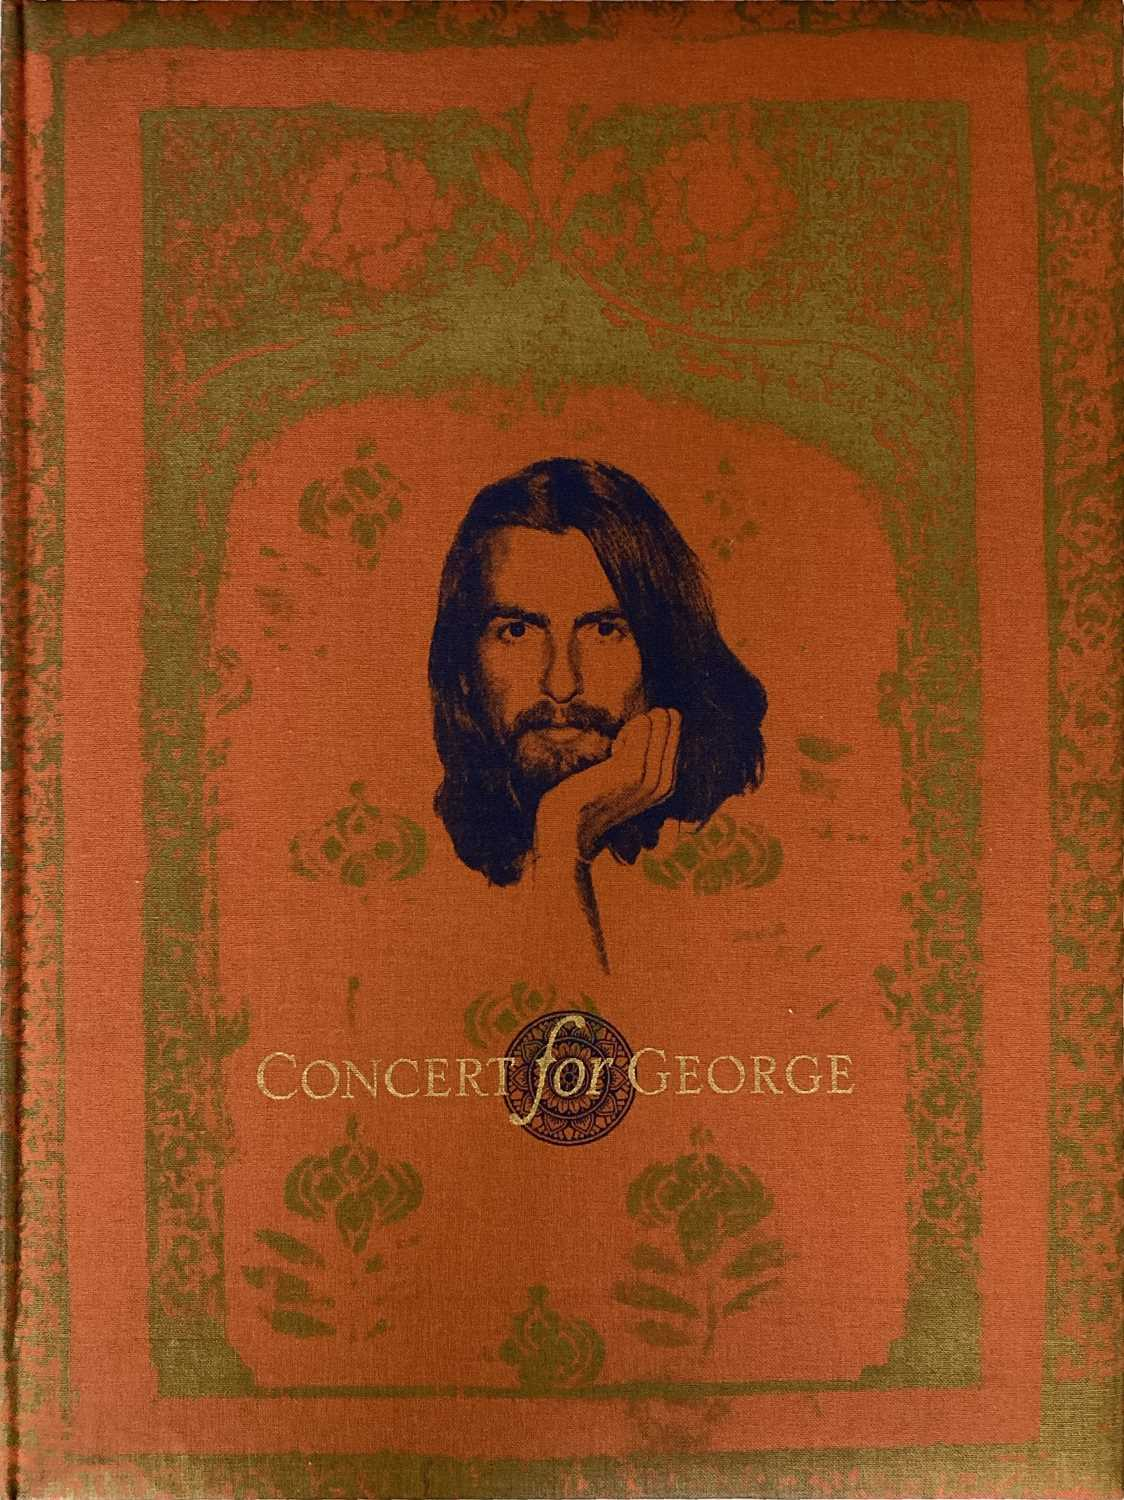 GENESIS PUBLICATIONS - A CONCERT FOR GEORGE. - Image 2 of 6